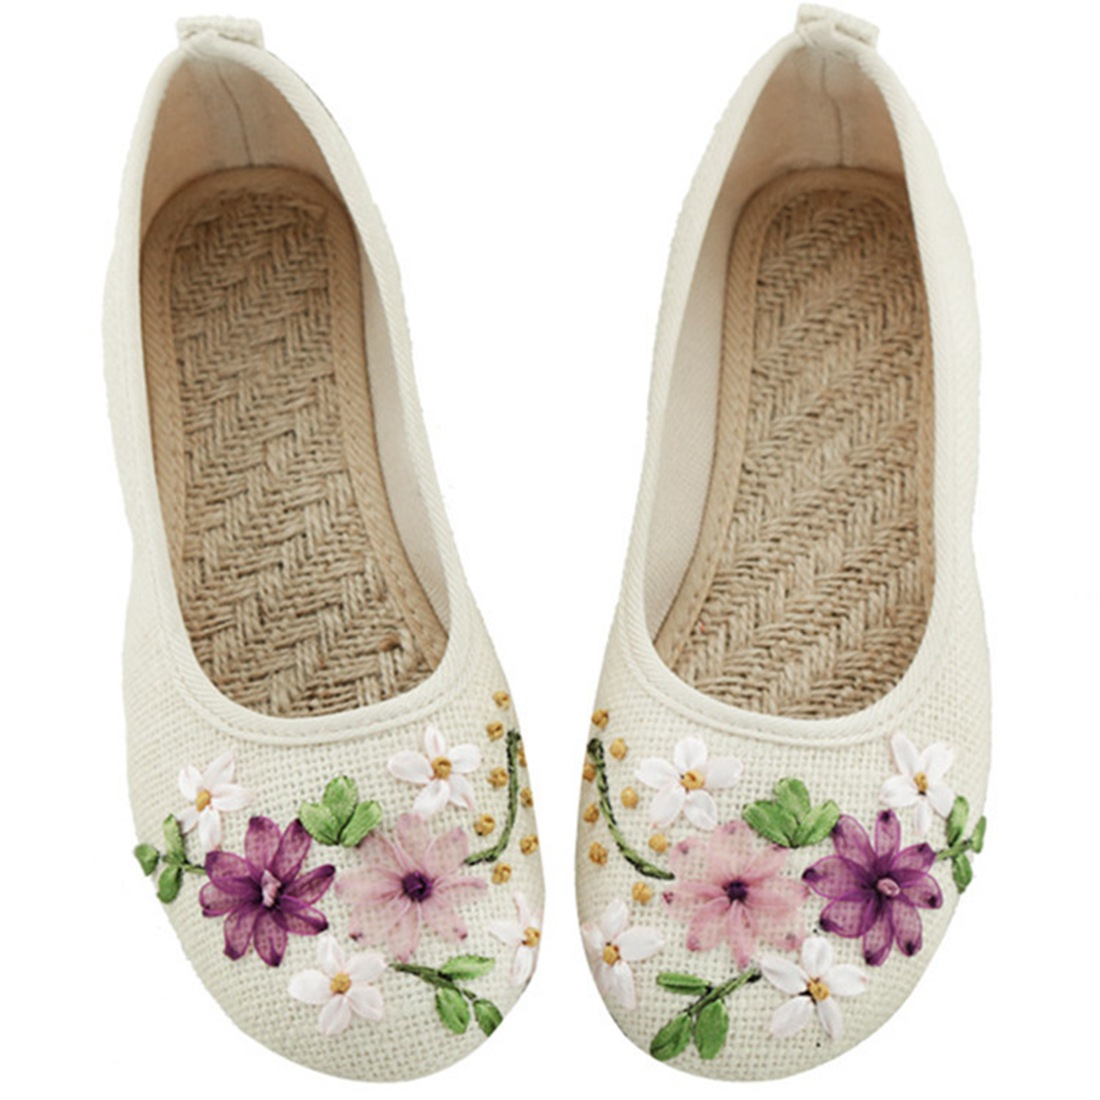 2016 New Women Flower Flats Slip On Cotton Fabric Casual Shoes Comfortable Round Toe Student Flat Shoes Woman Plus Size women flats slip on casual shoes 2017 summer fashion new comfortable flock pointed toe flat shoes woman work loafers plus size